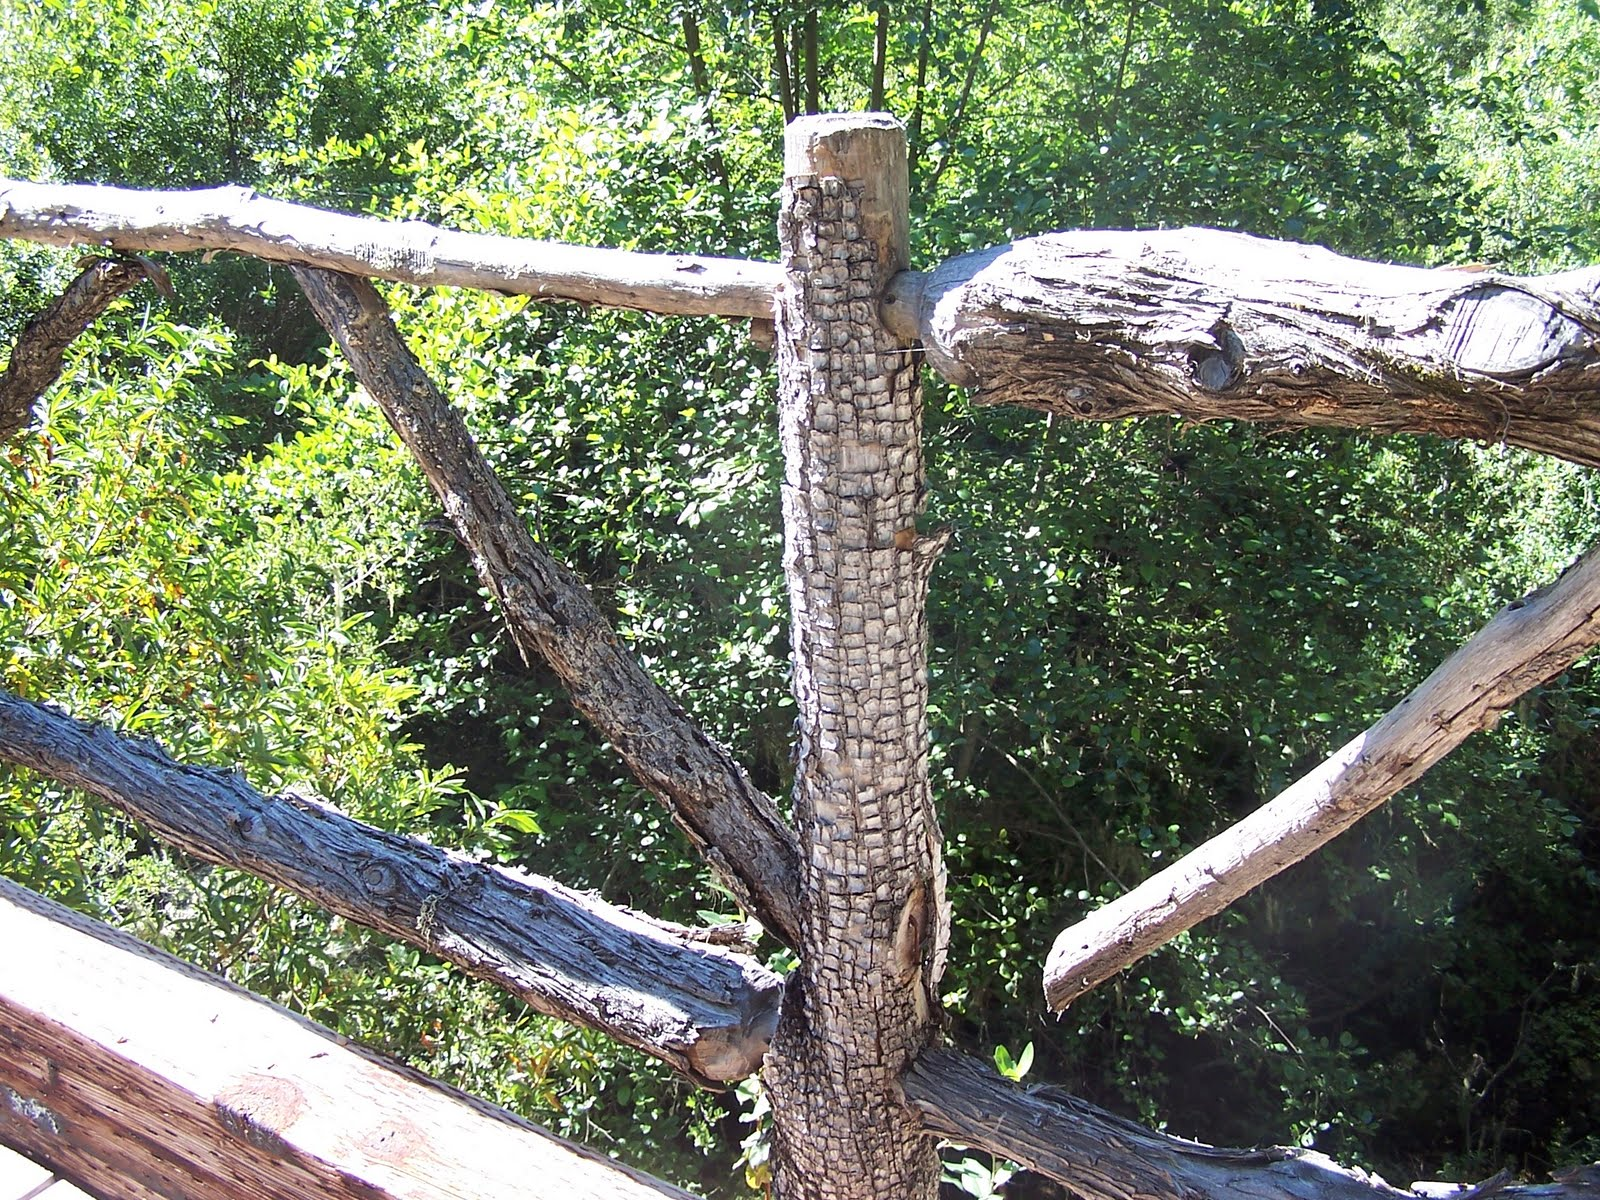 gopher-wood construction